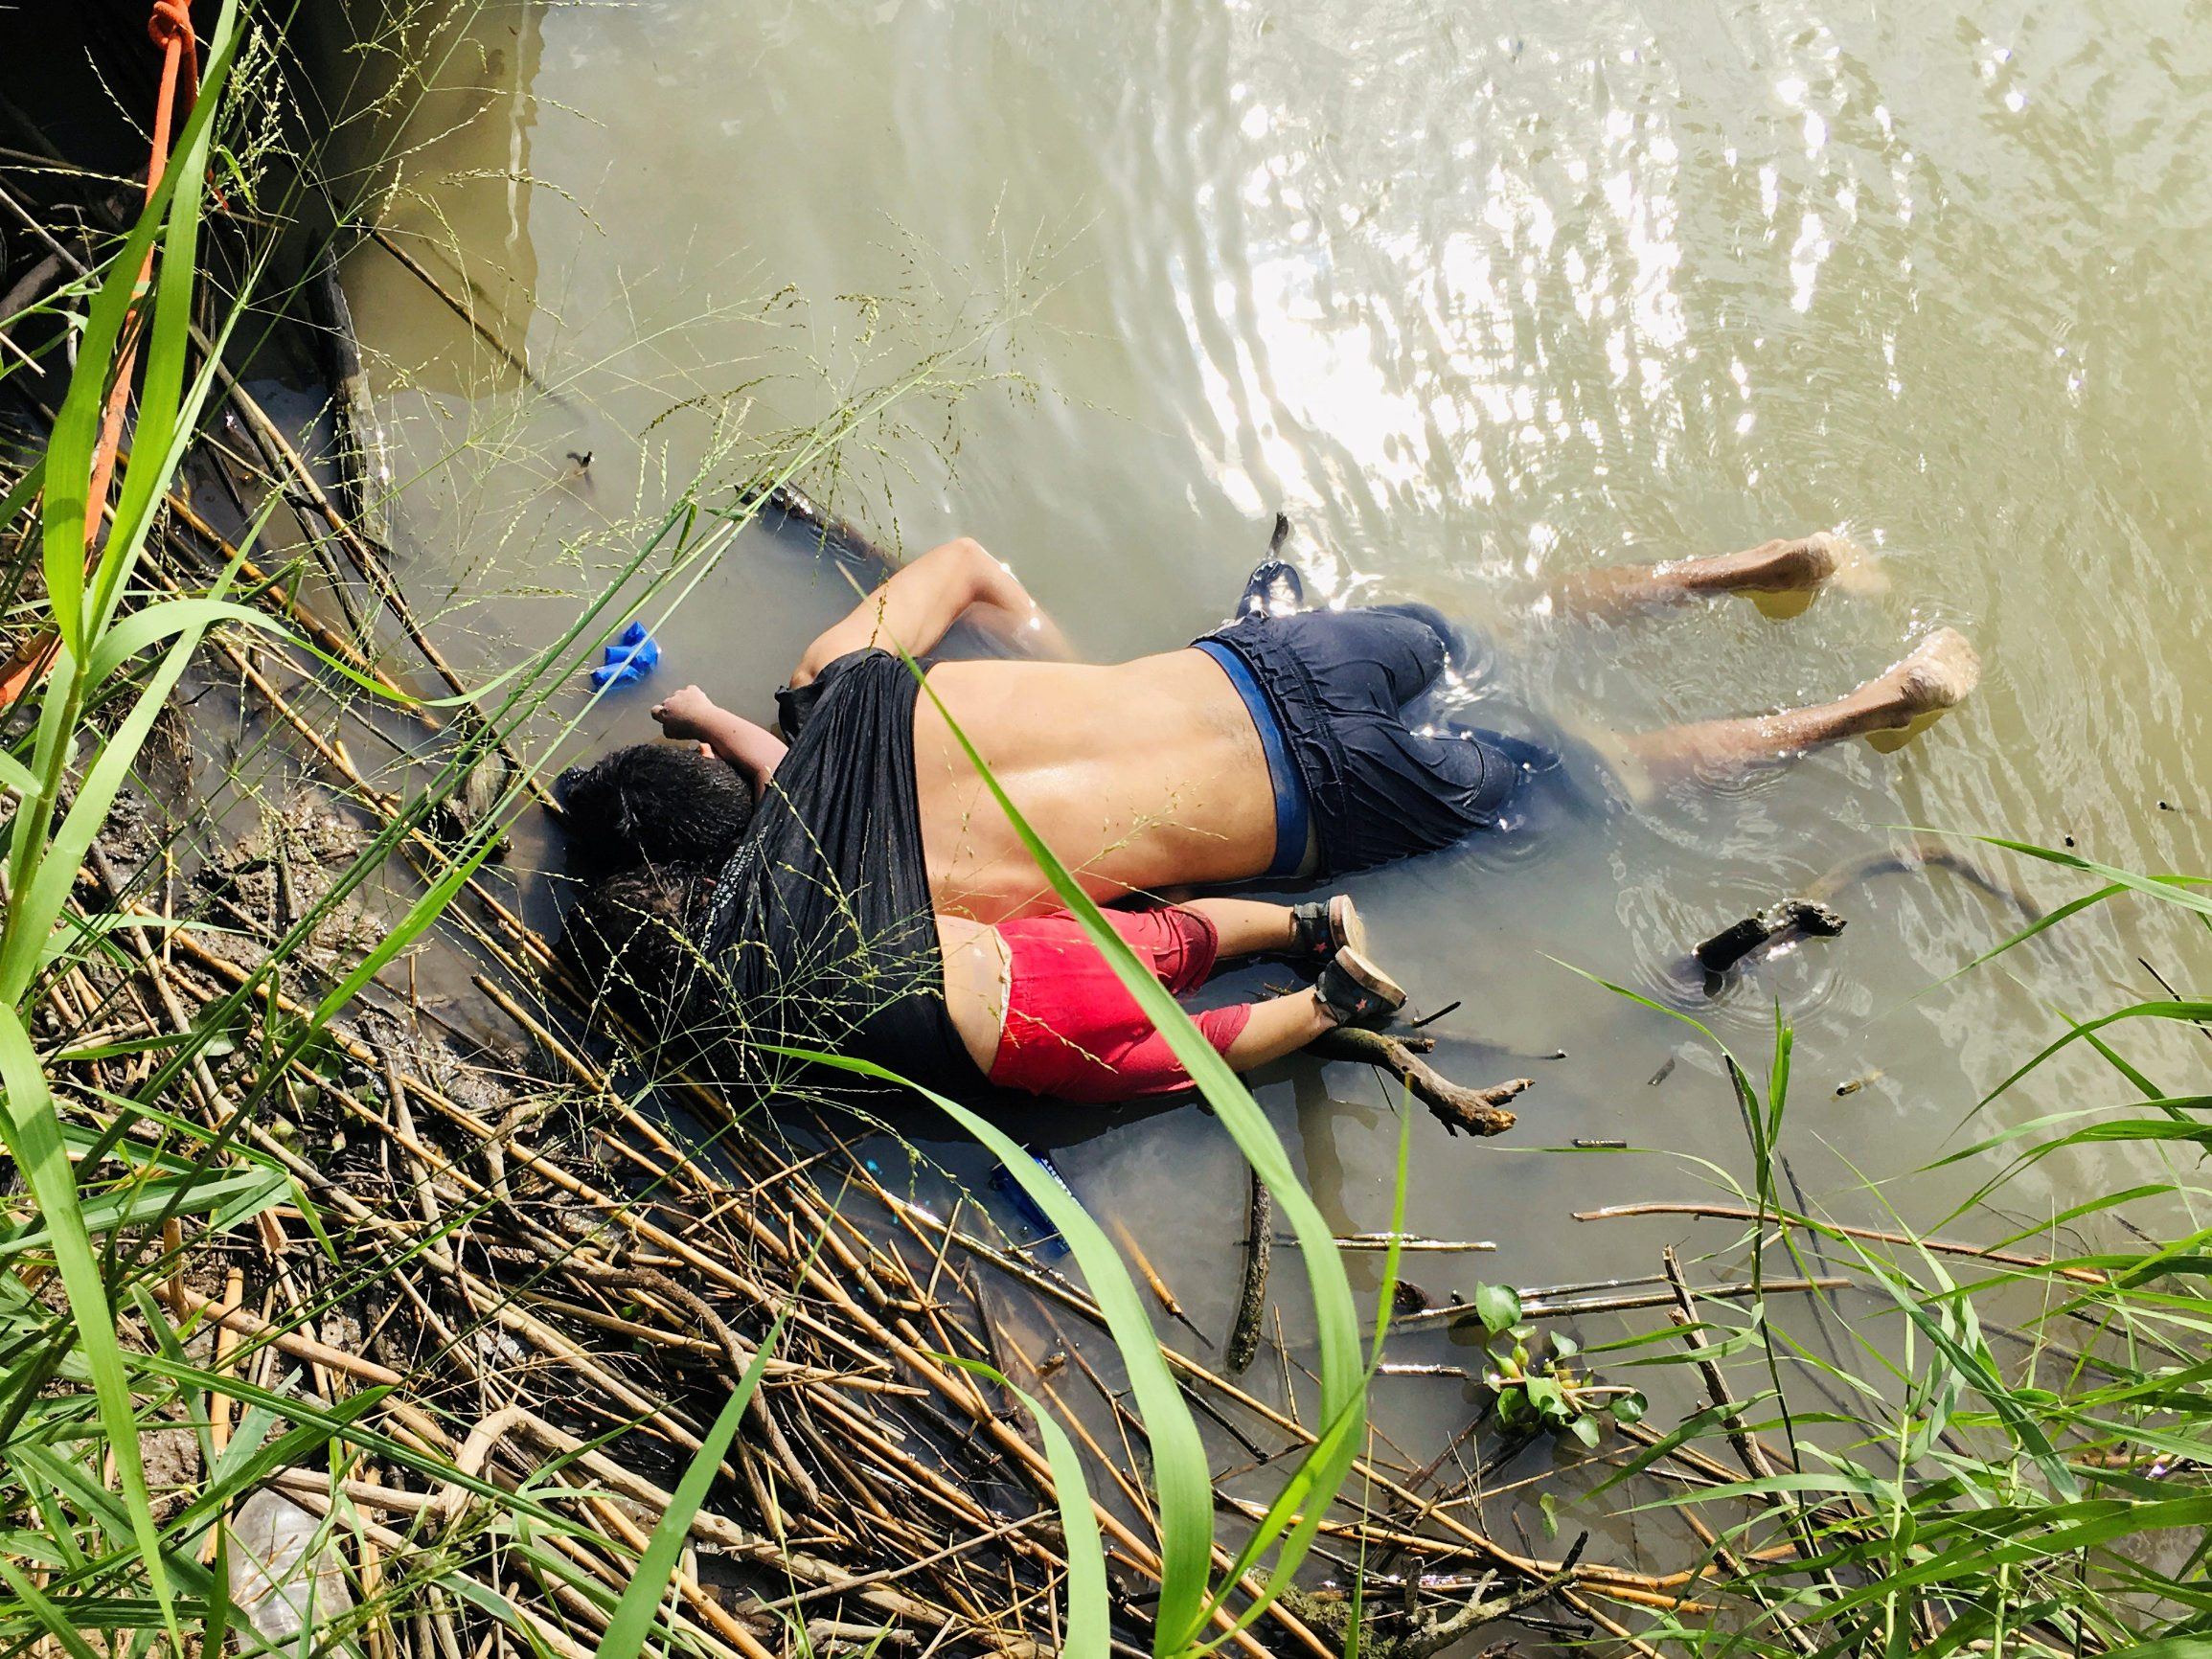 ATTENTION EDITORS - SENSITIVE MATERIAL. THIS IMAGE MAY OFFEND OR DISTURB    The bodies of Salvadoran migrant Oscar Alberto Martinez Ramirez and his daughter Valeria lie in the Rio Bravo river in Matamoros, in Tamaulipas state, Mexico June 24, 2019. REUTERS/Stringer NO RESALES. NO ARCHIVES     TPX IMAGES OF THE DAY  SEARCH